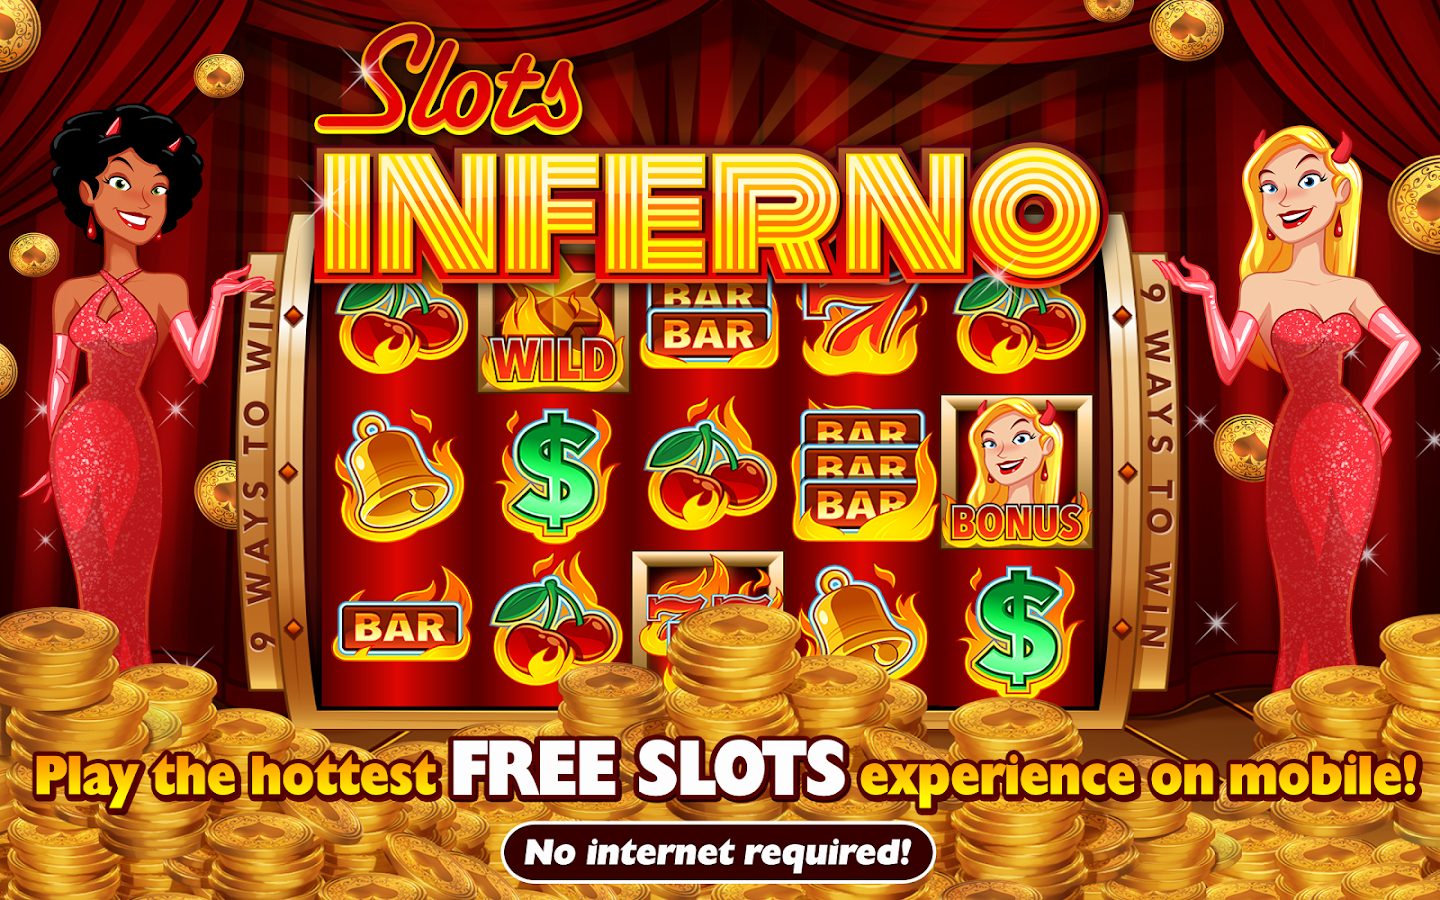 Senor Burrito Slot Machine - Play Now with No Downloads